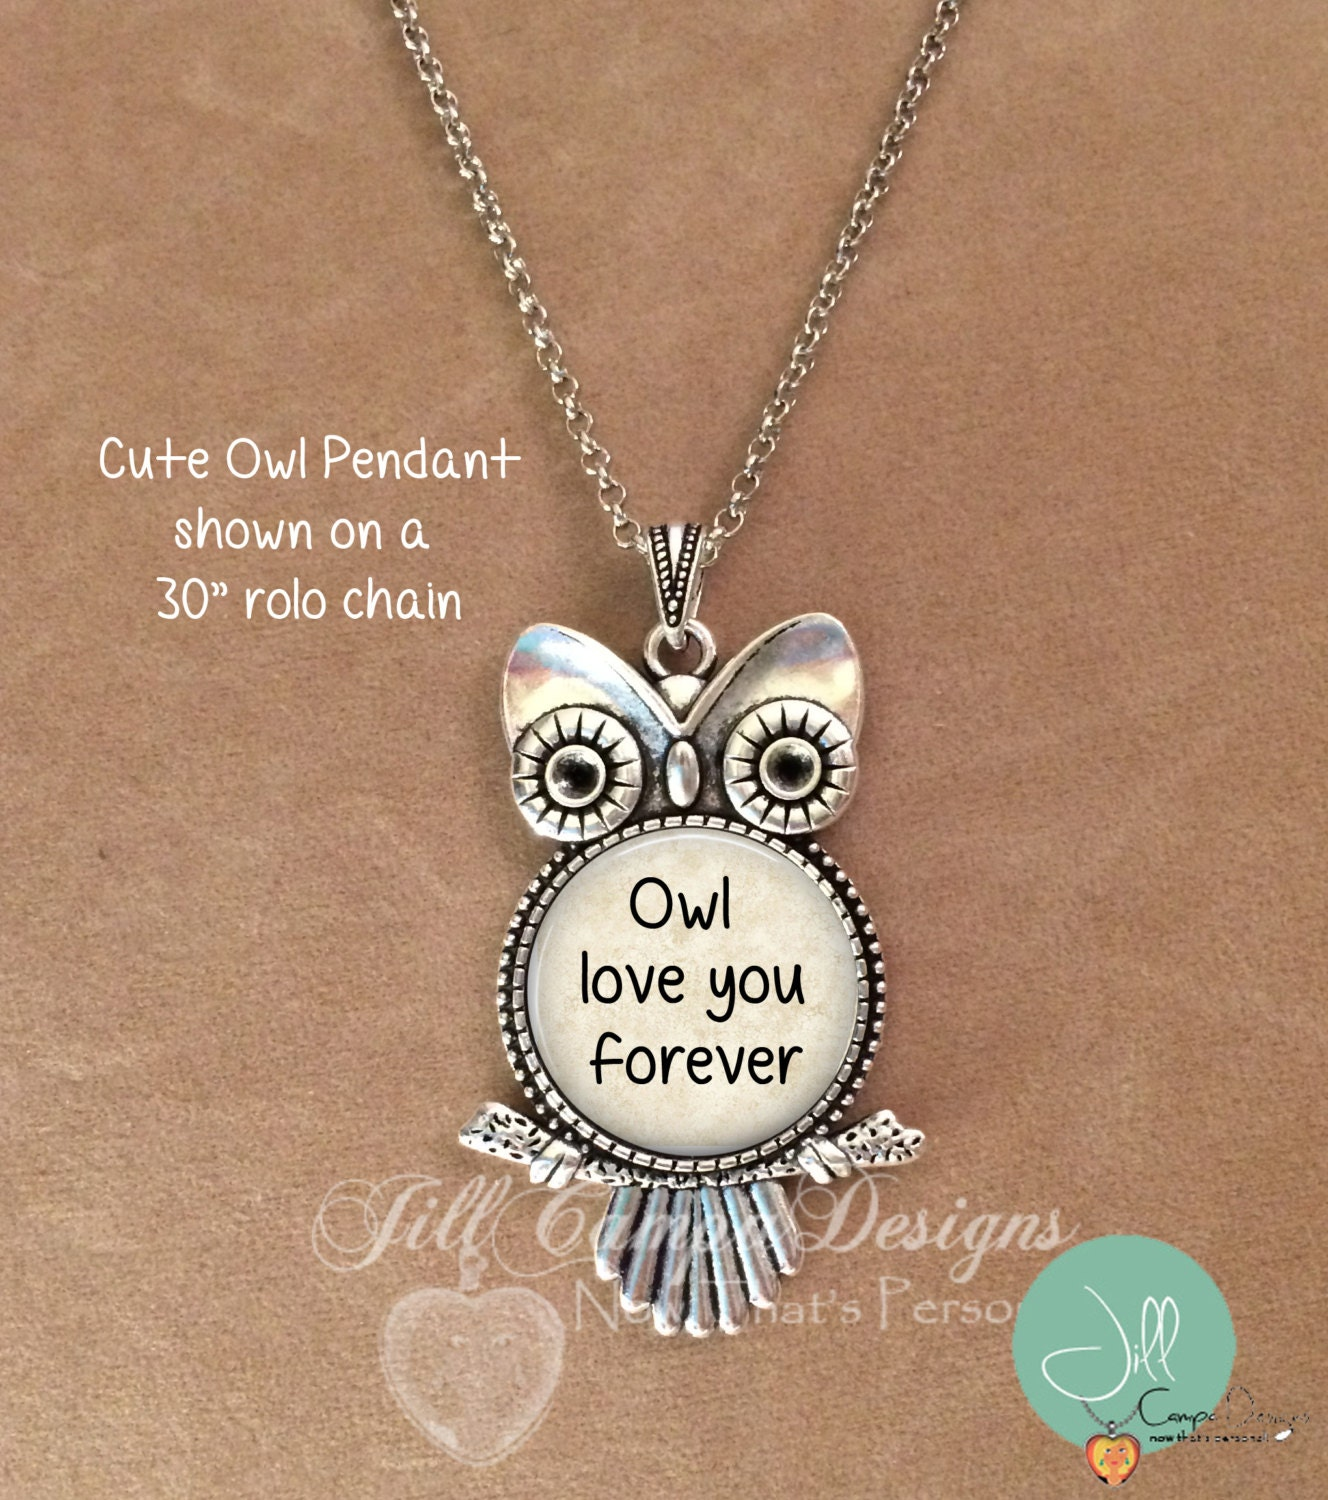 Owl necklace Owl love you forever Owl pendant